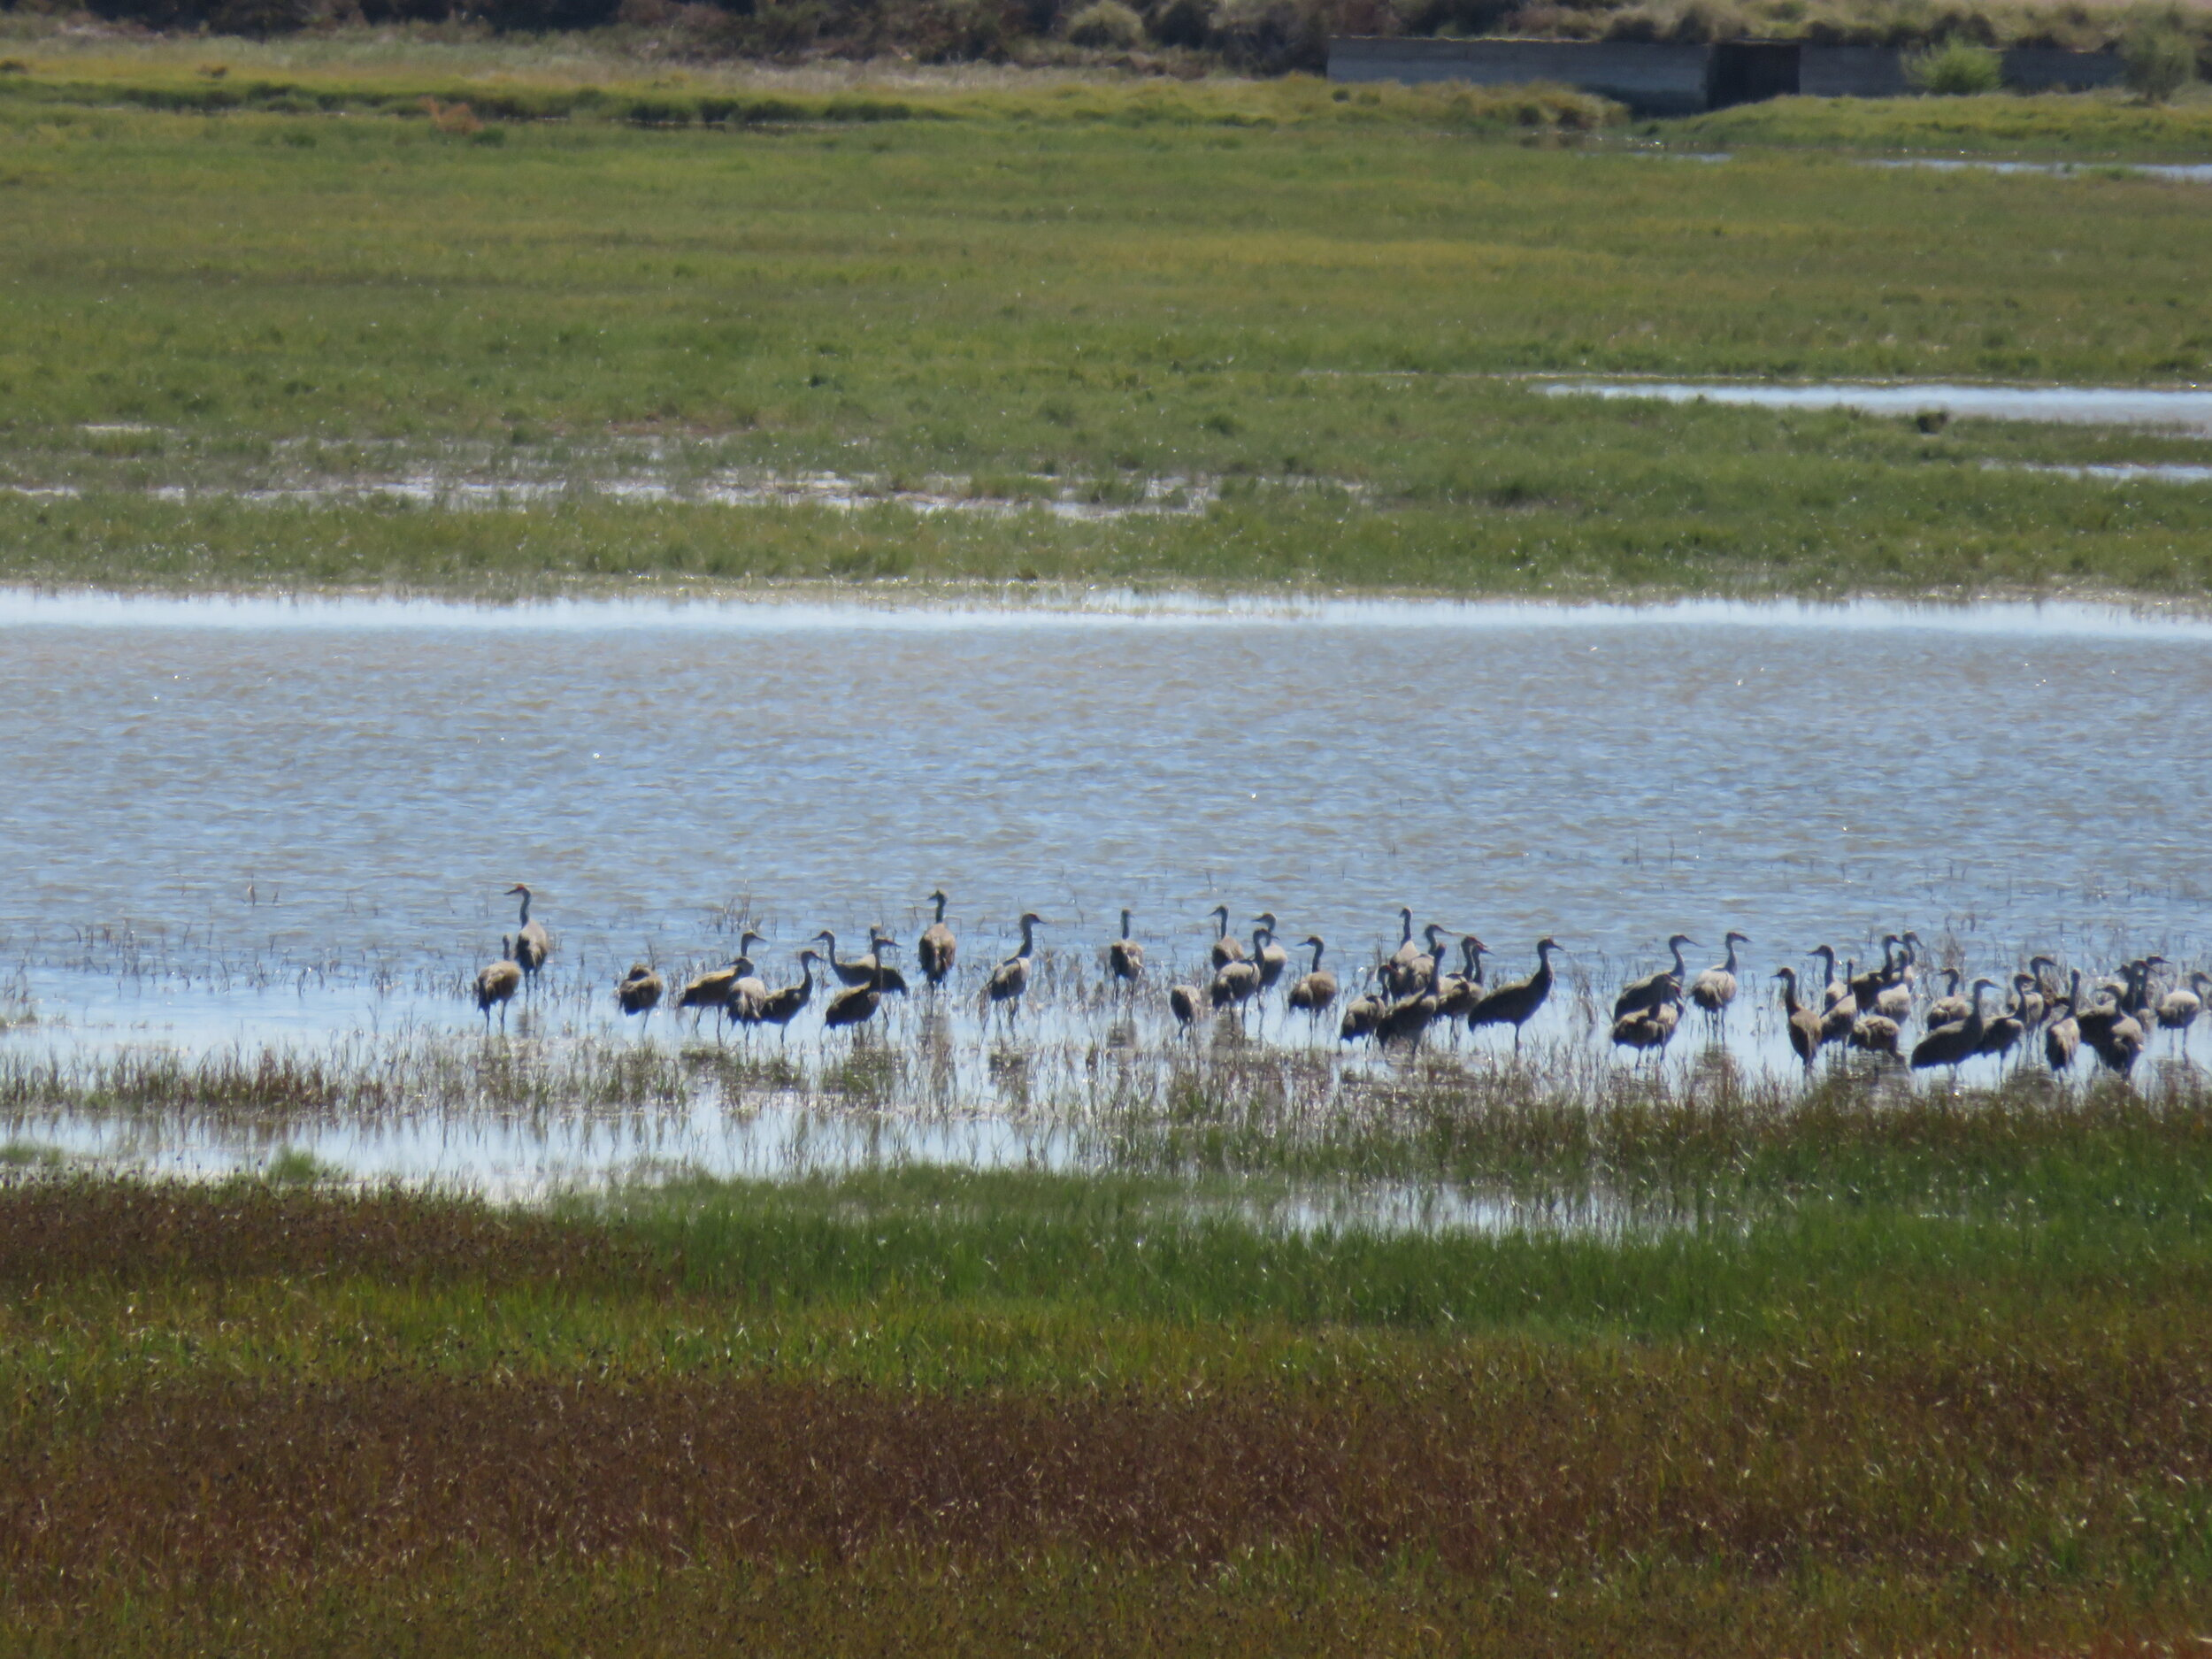 The sandhill cranes are back, but we could only see them at a distance.